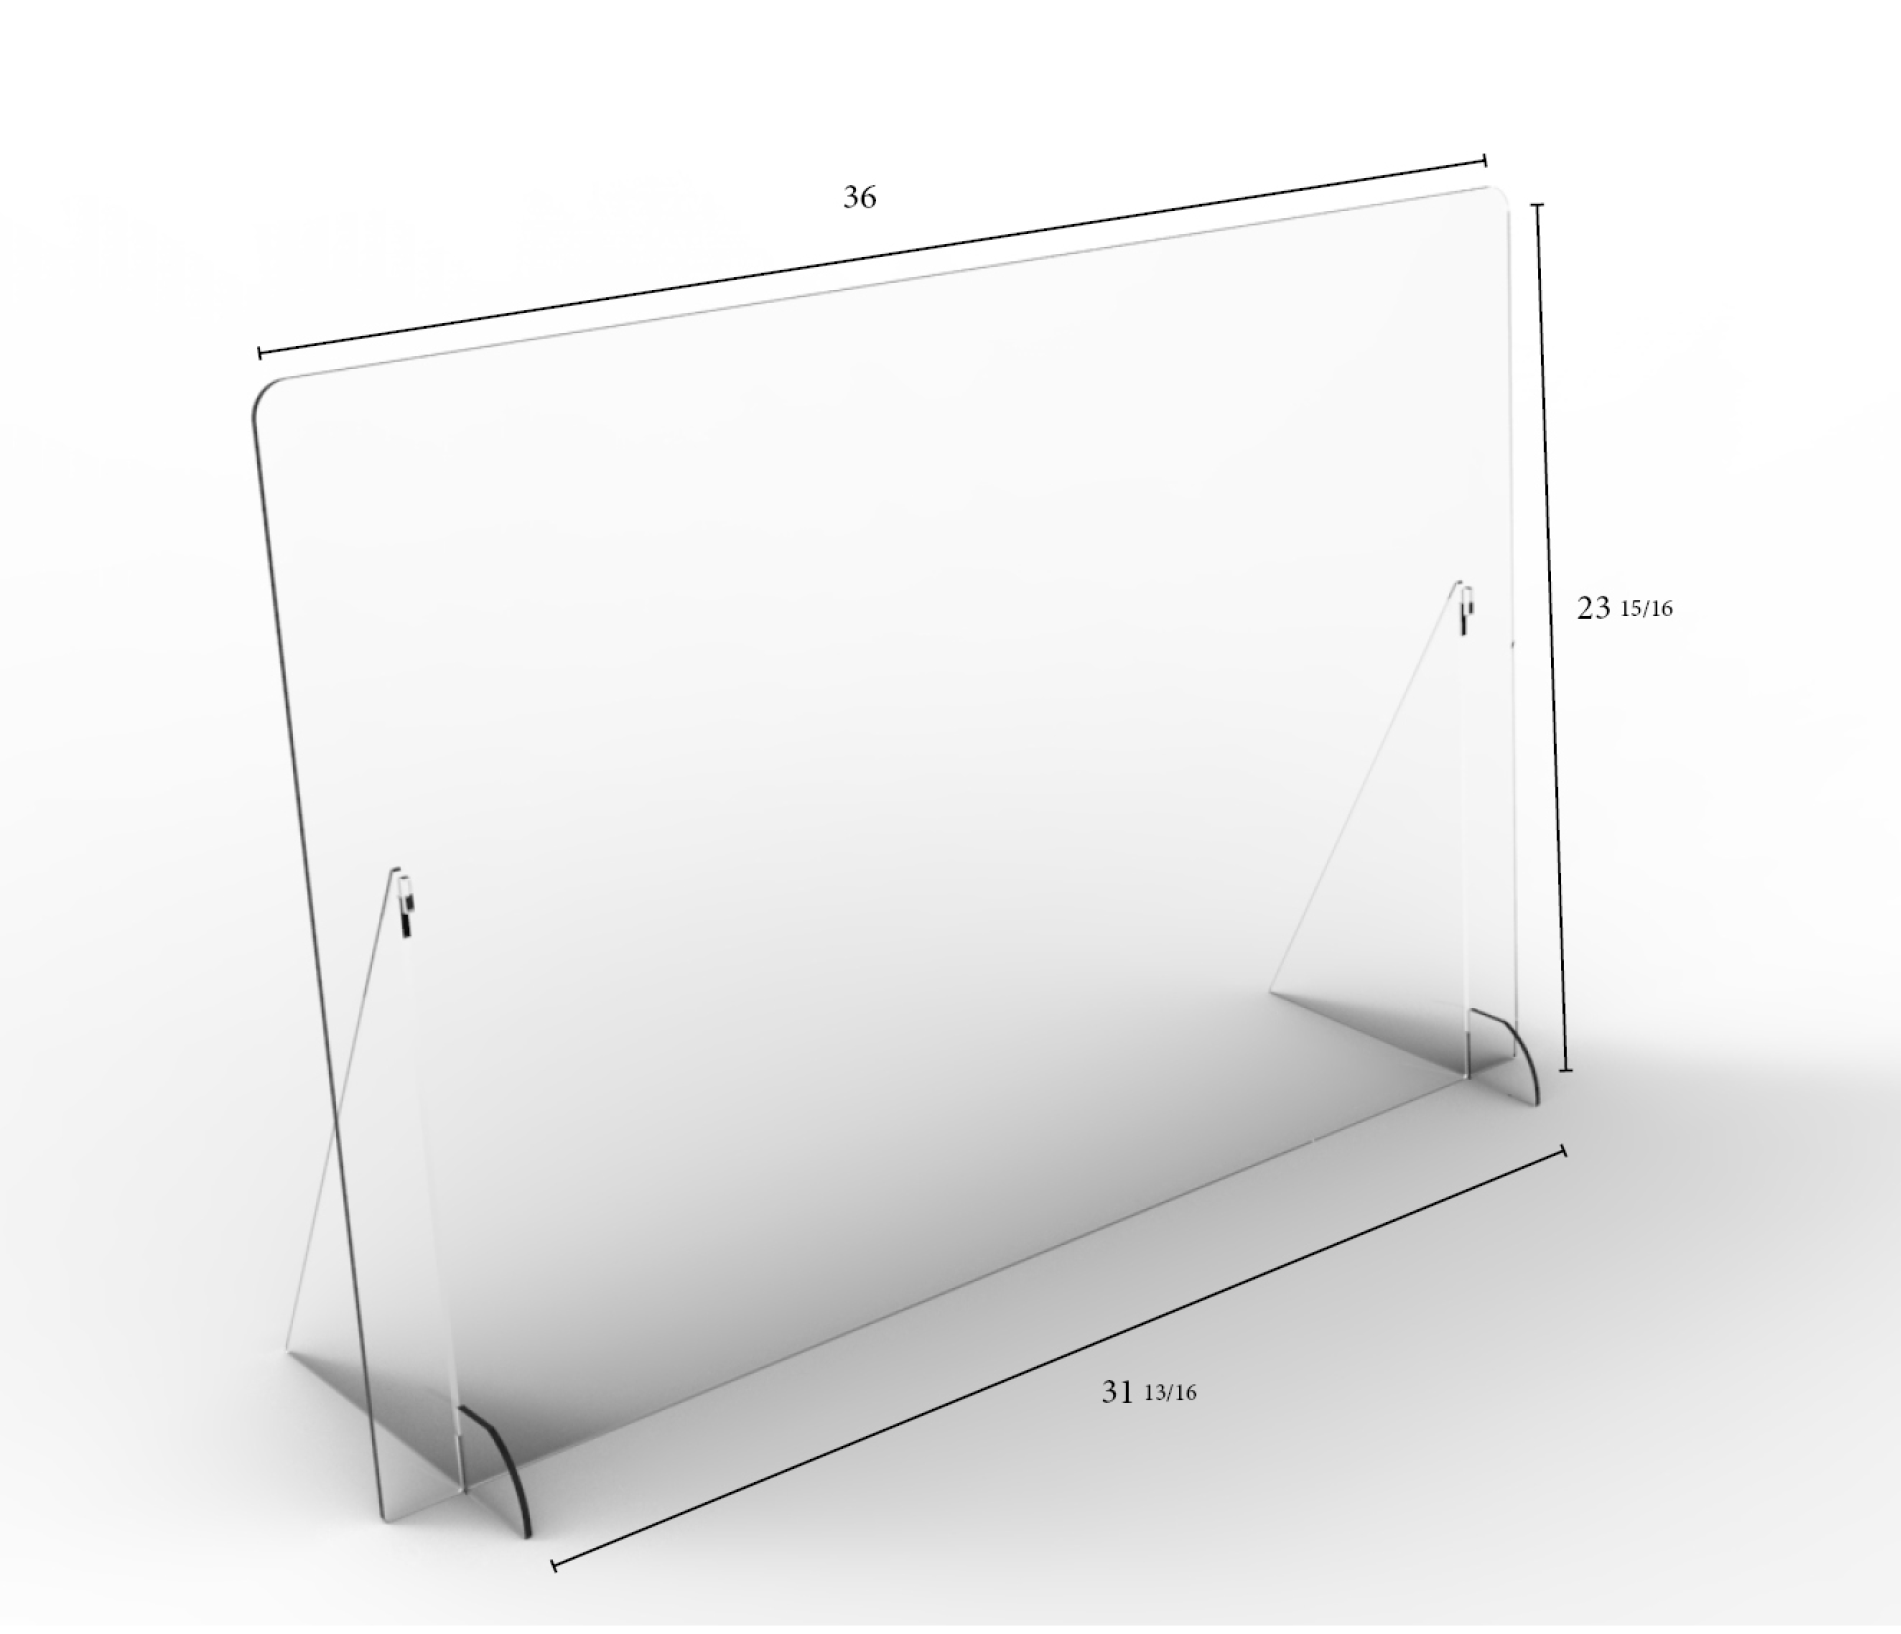 "Solid Angled Clear Protective Shield - 36"" W x 24"" H 